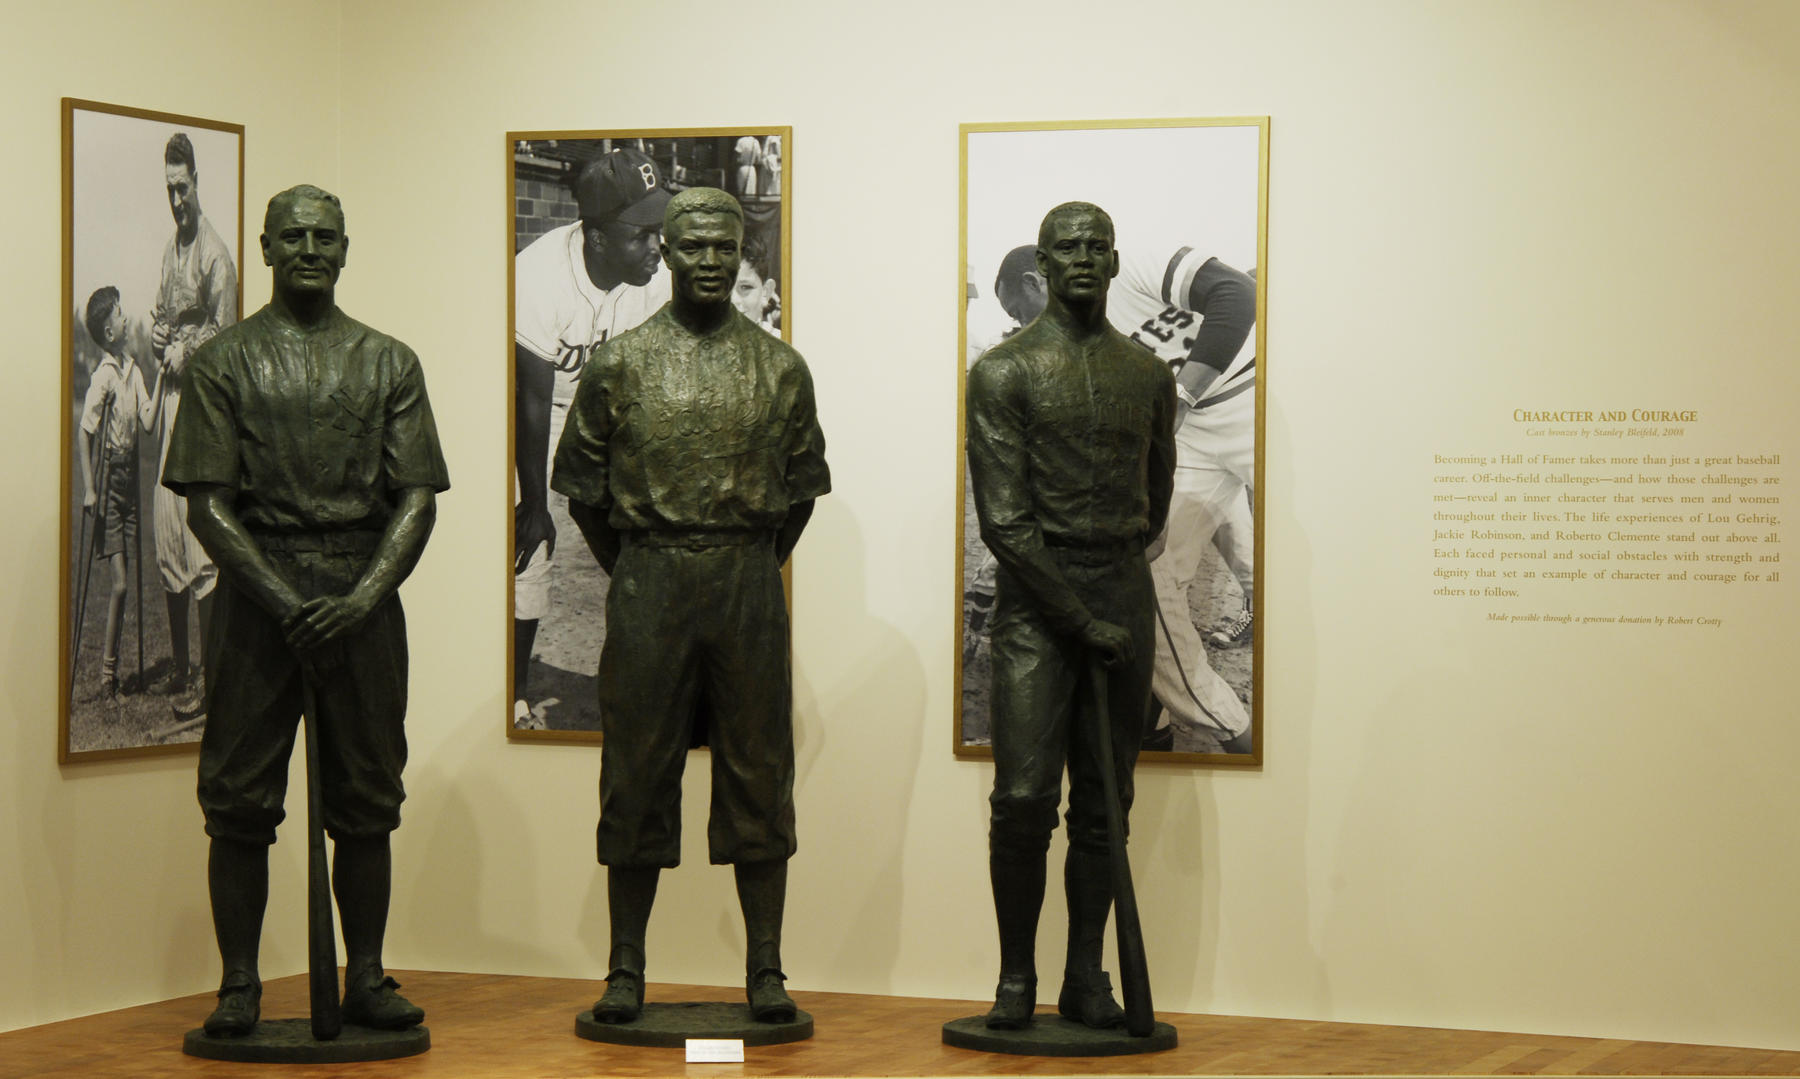 Three larger-than-life statues of Hall of Fame Members Lou Gehrig, Jackie Robinson and Roberto Clemente, located in the Museum's foyer, represent character and courage in baseball and in life. (By Photographer Milo Stewart Jr./National Baseball Hall of Fame and Museum)